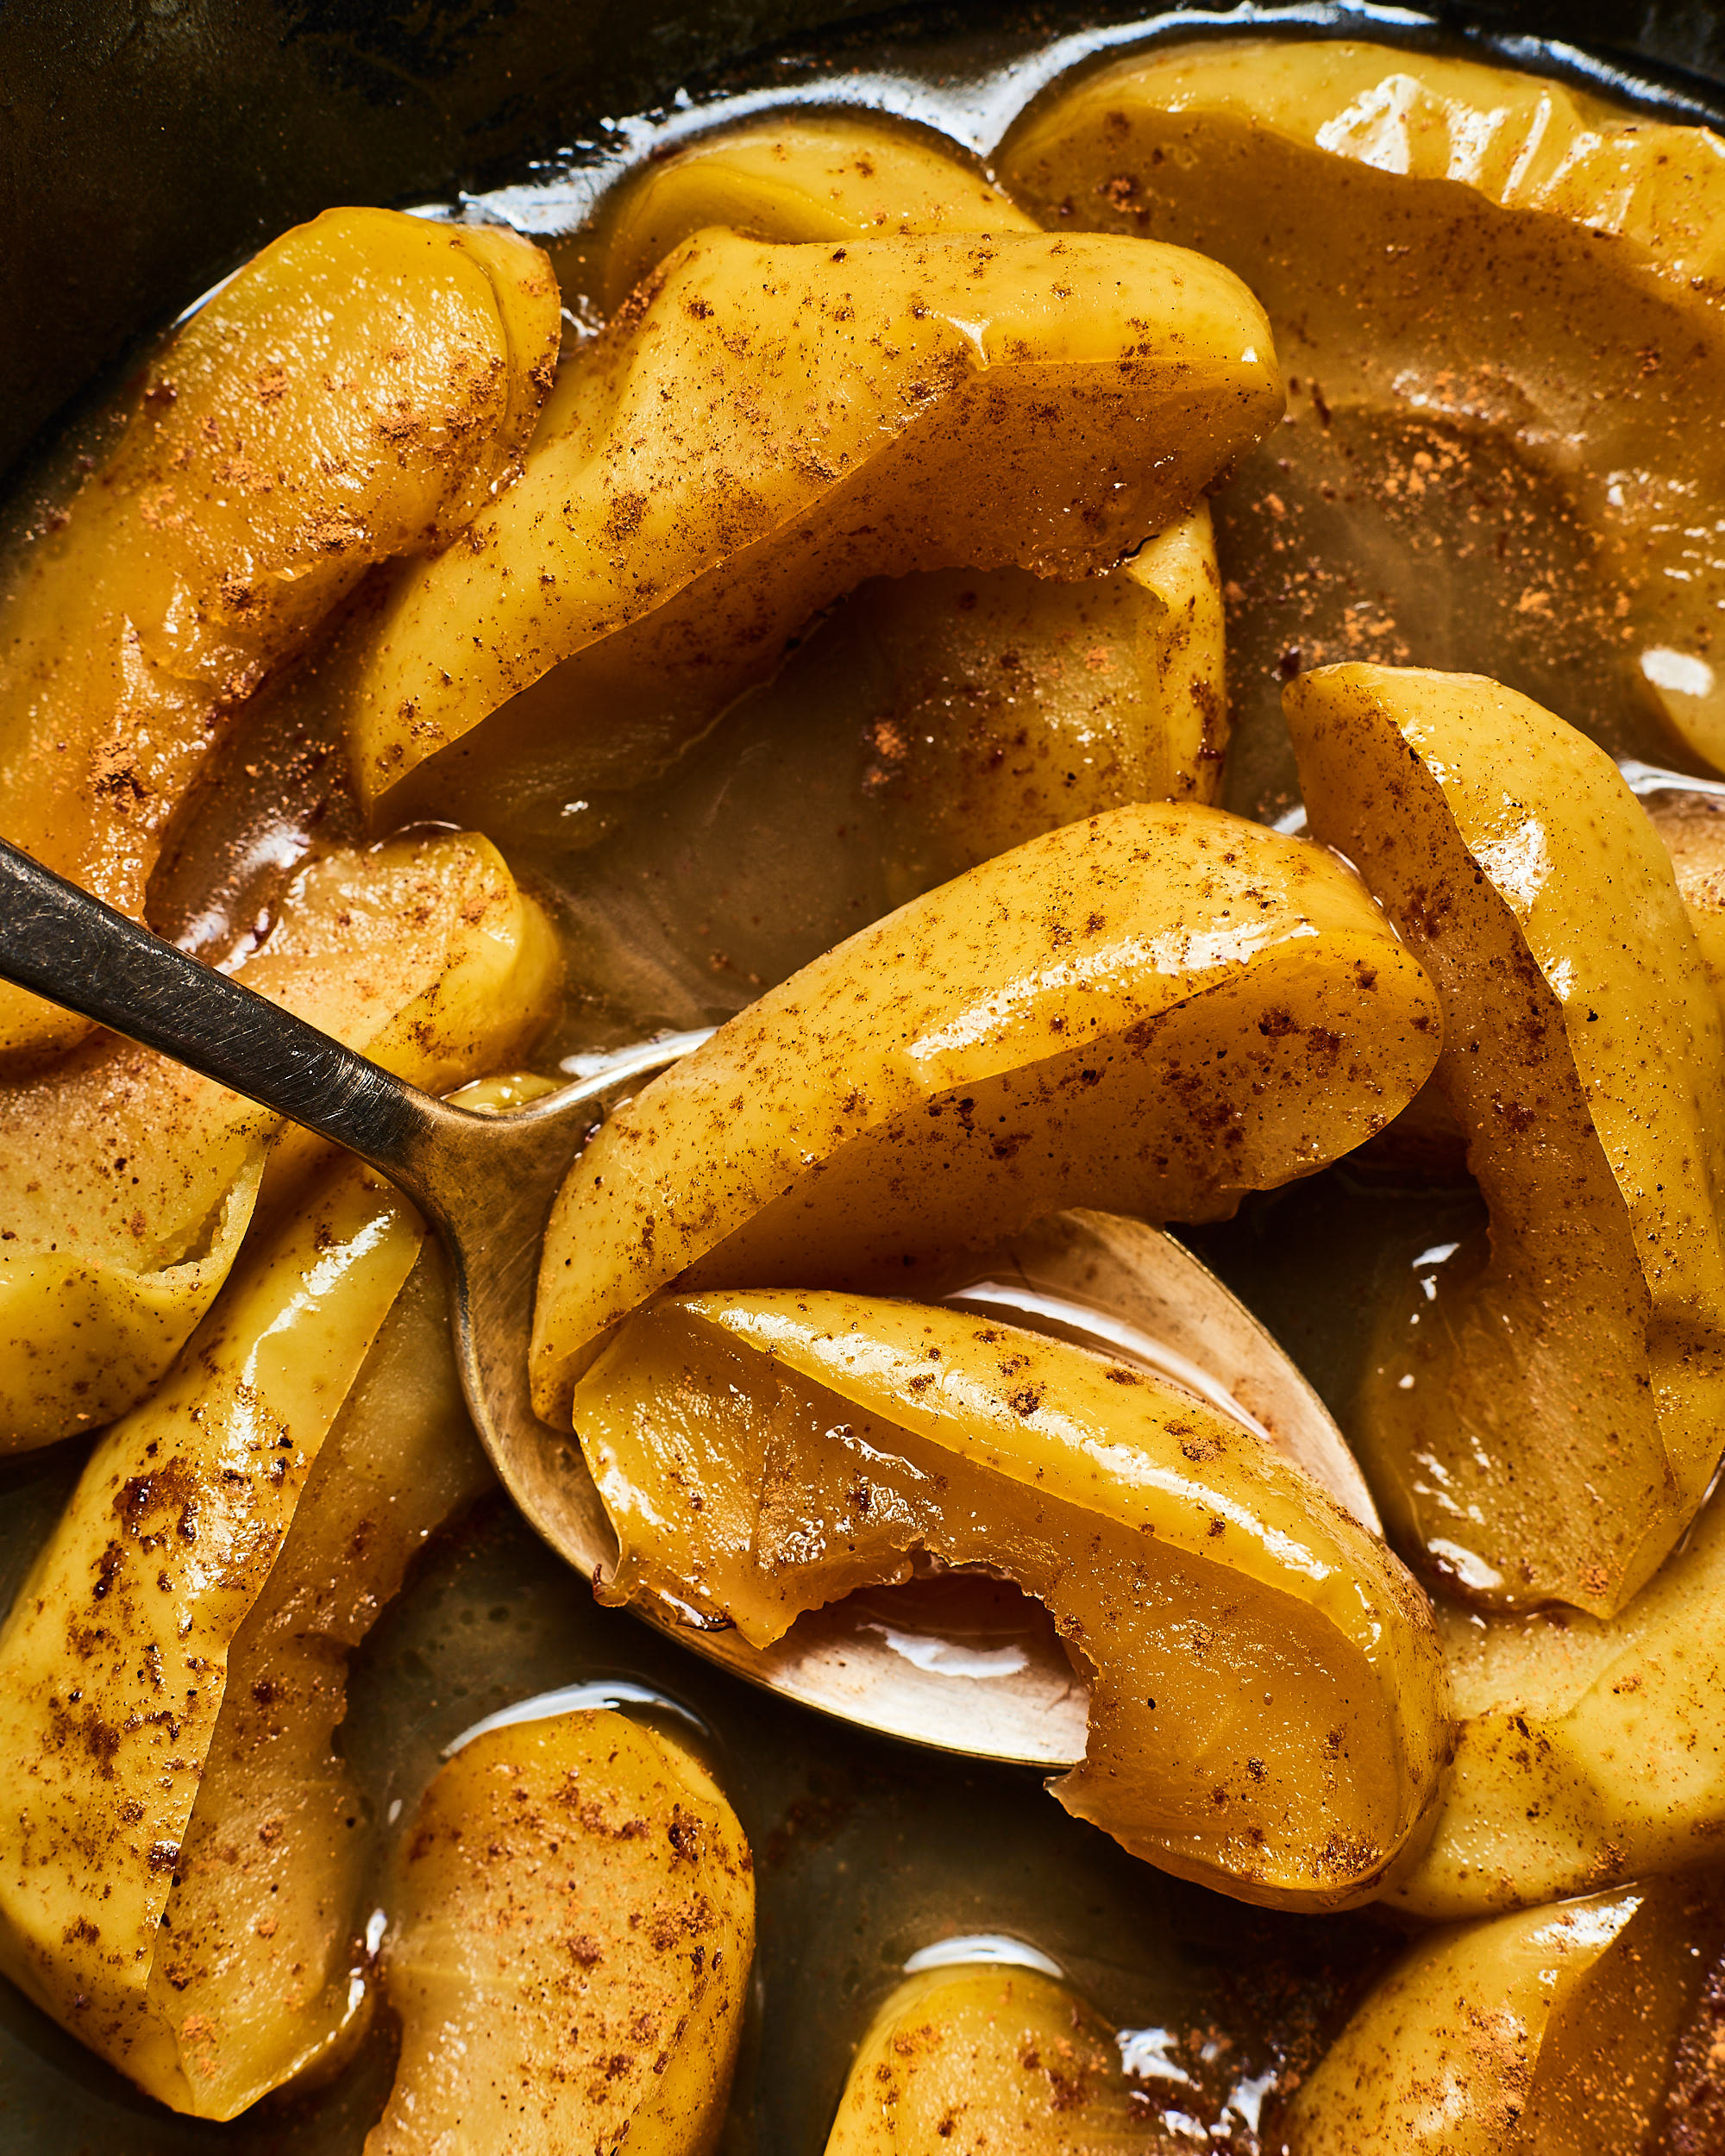 Recipe: Better-than-Cracker Barrel Skillet Fried Apples